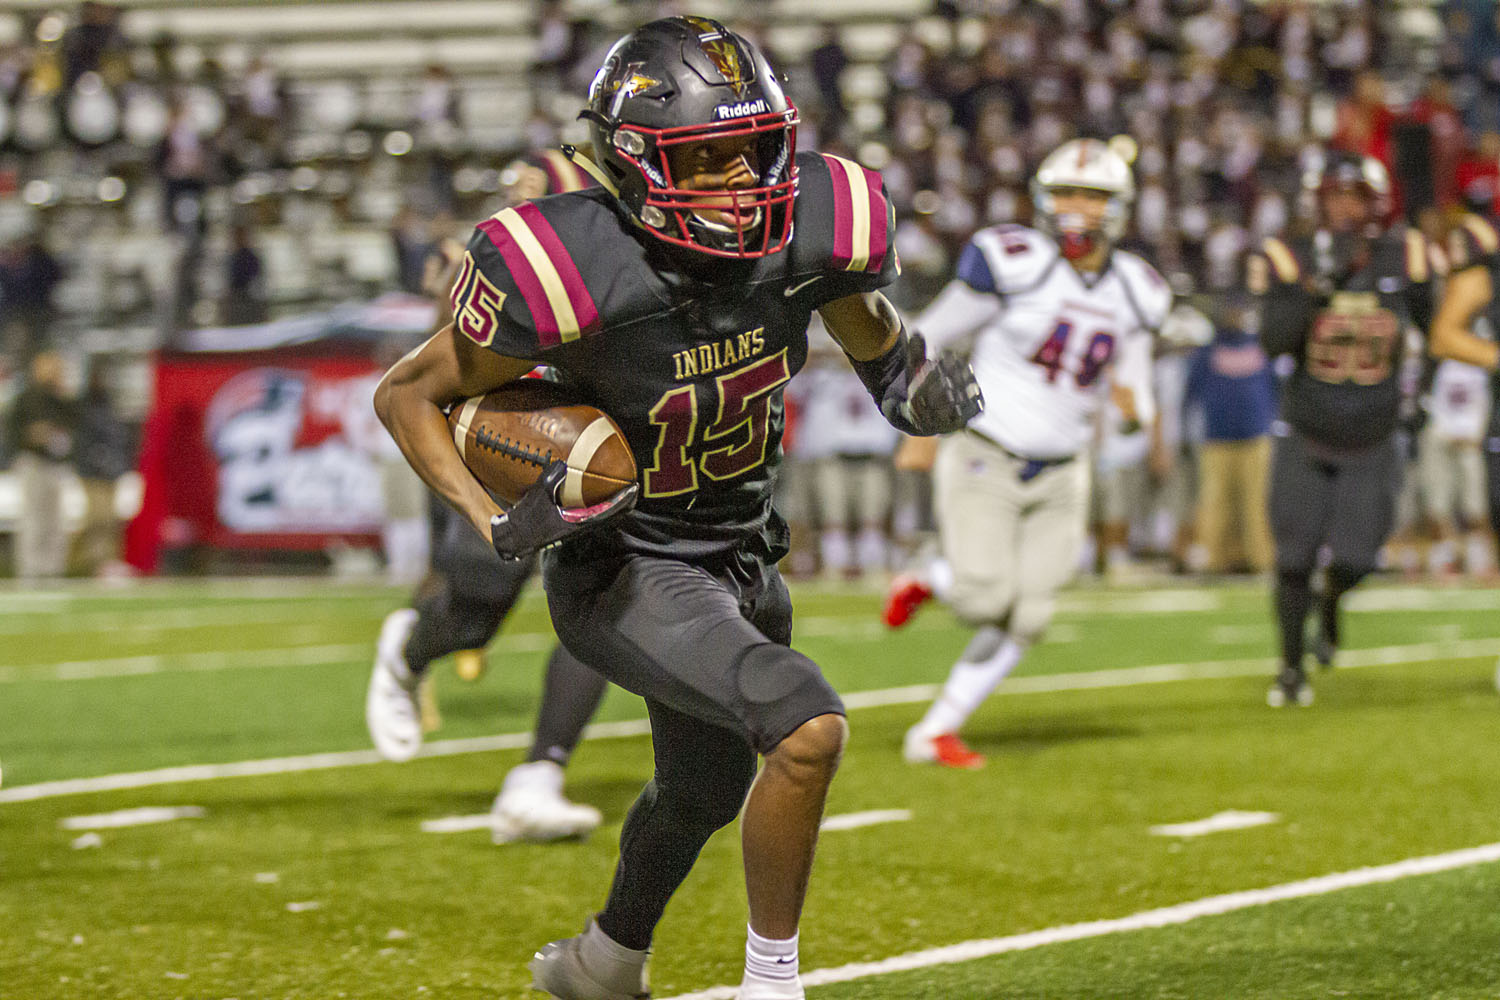 Pinson Valley keeps churning out dominant victories, travels to face Fort Payne in second round